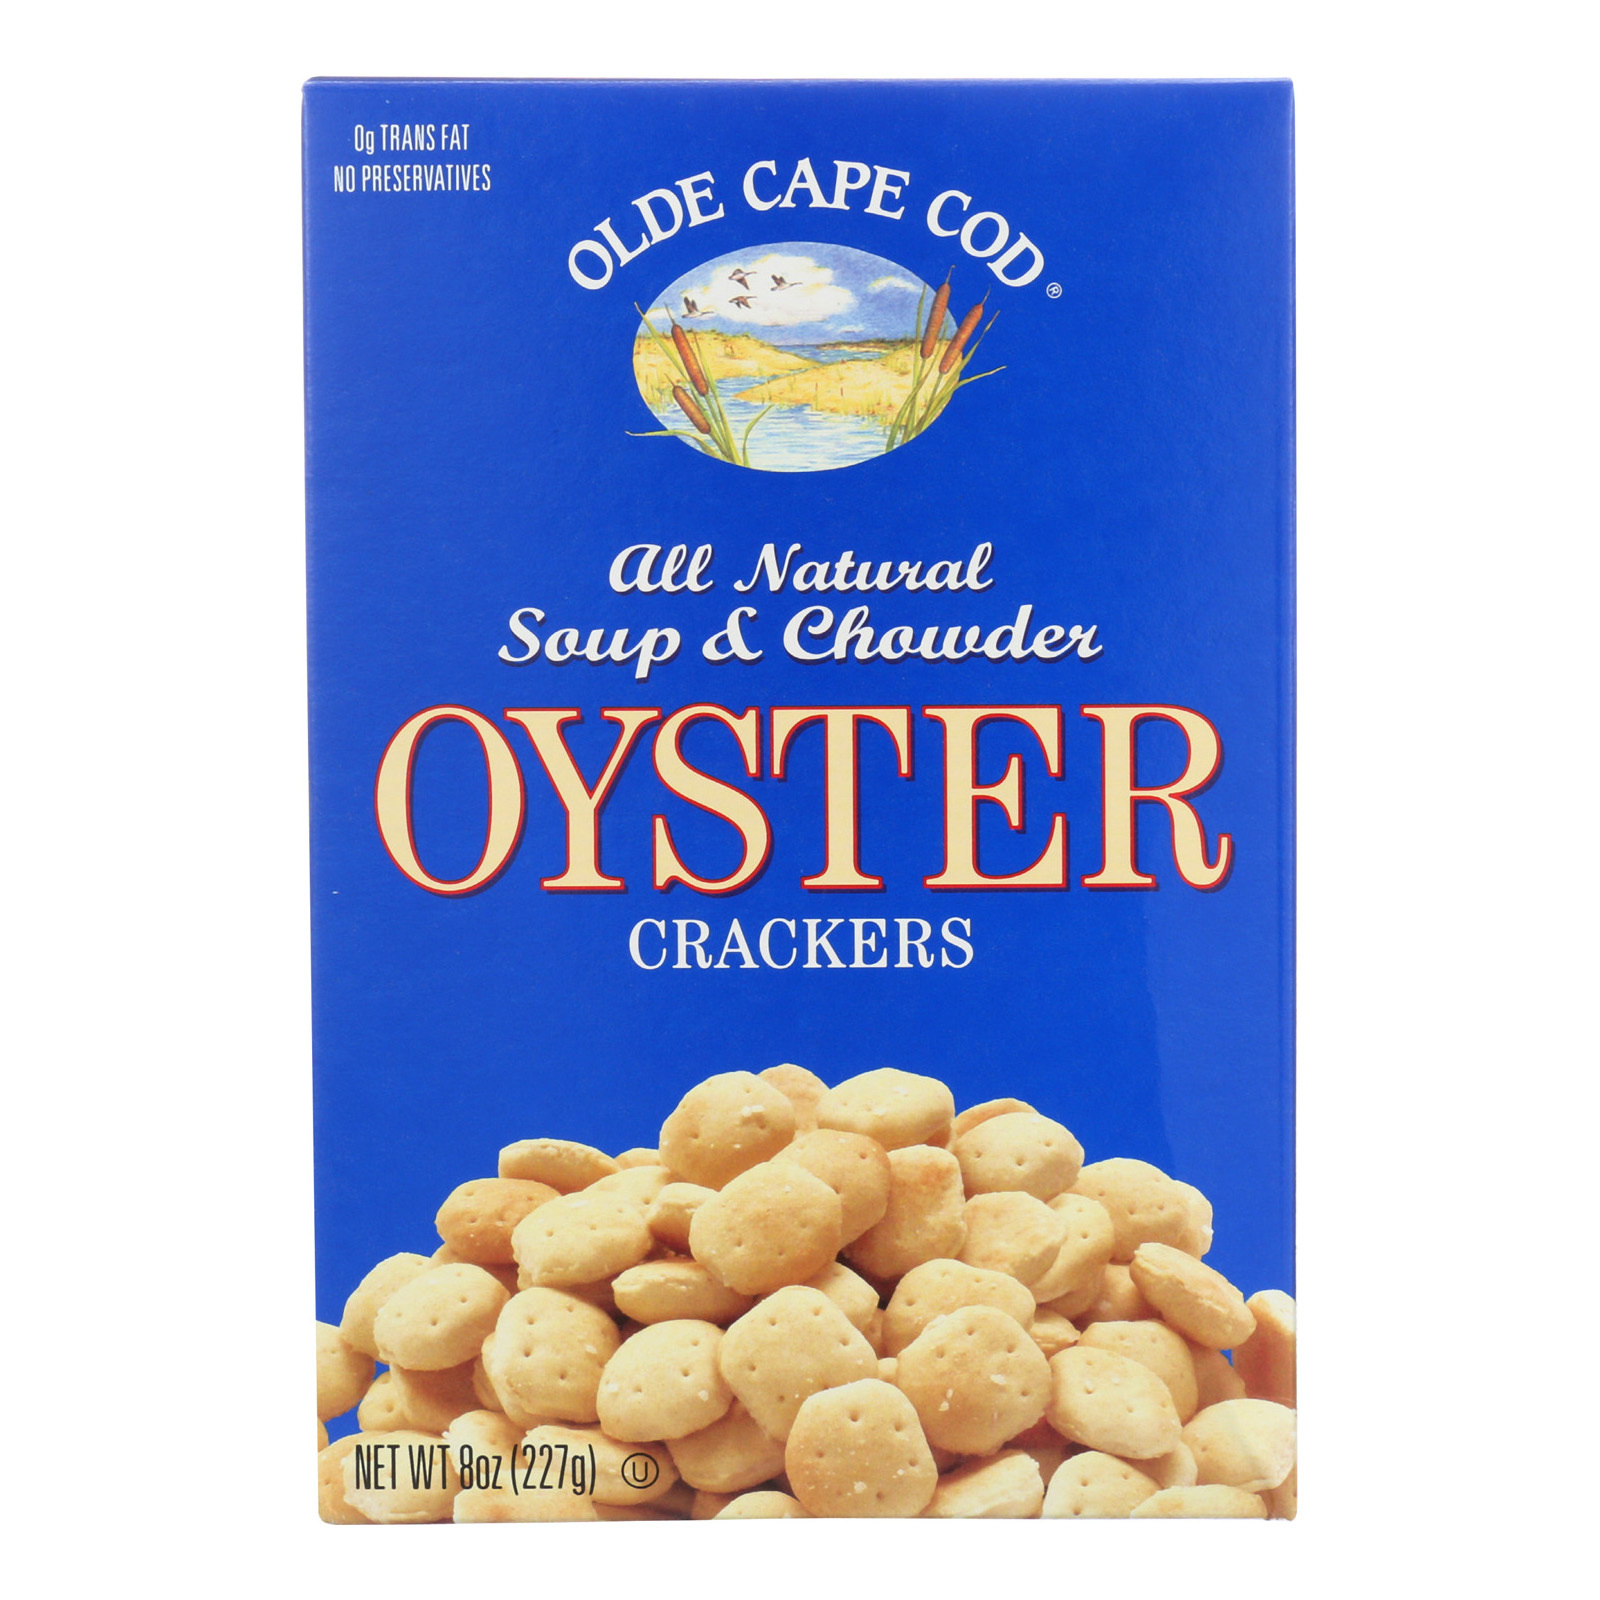 Olde Cape Cod Oyster - Crackers - Case of 12 - 8 oz.